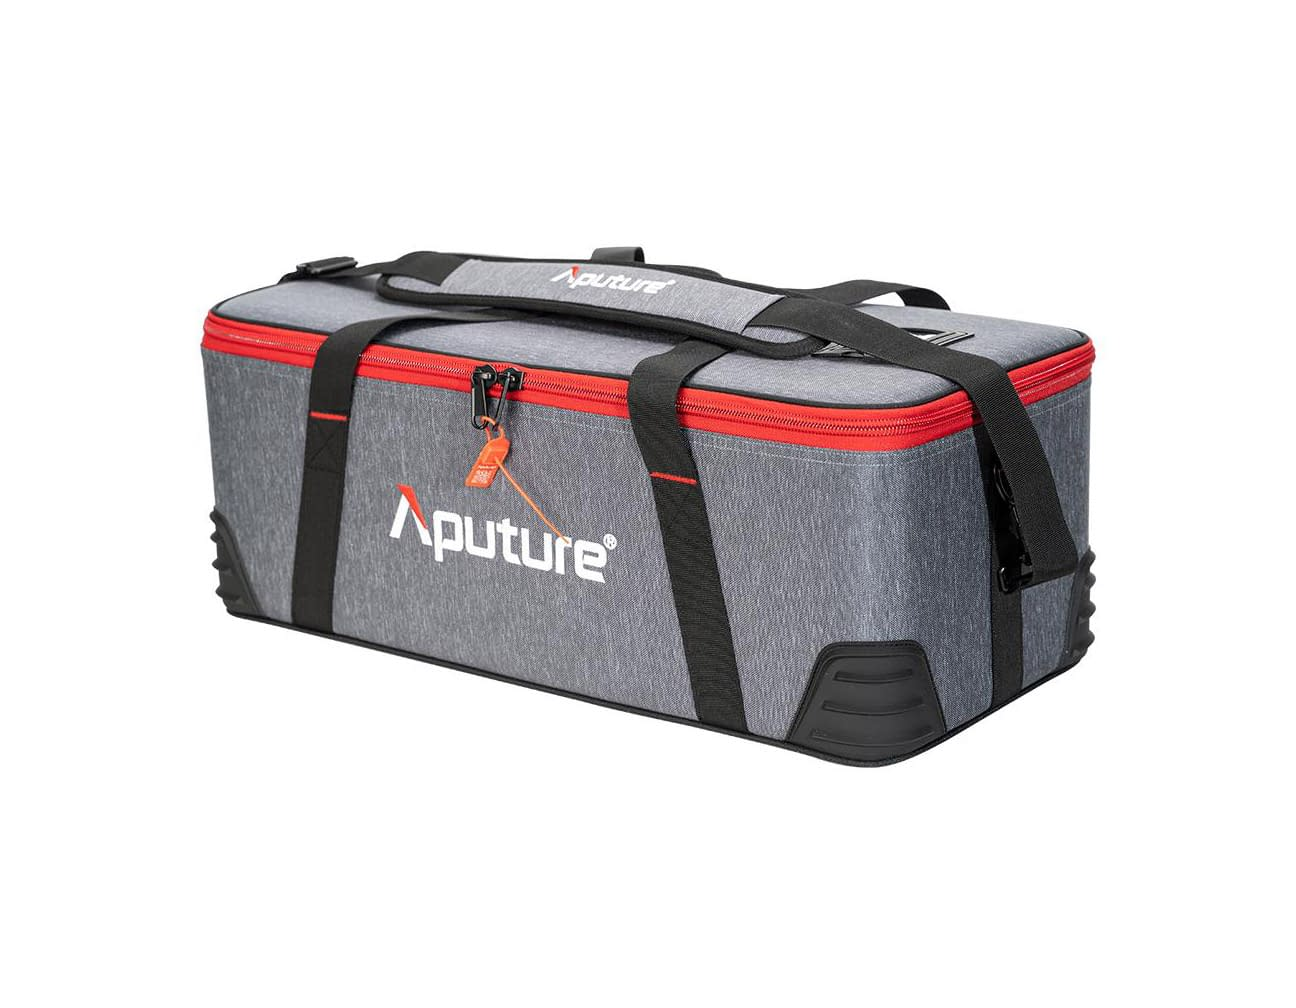 Aputure Light Storm 300X Case